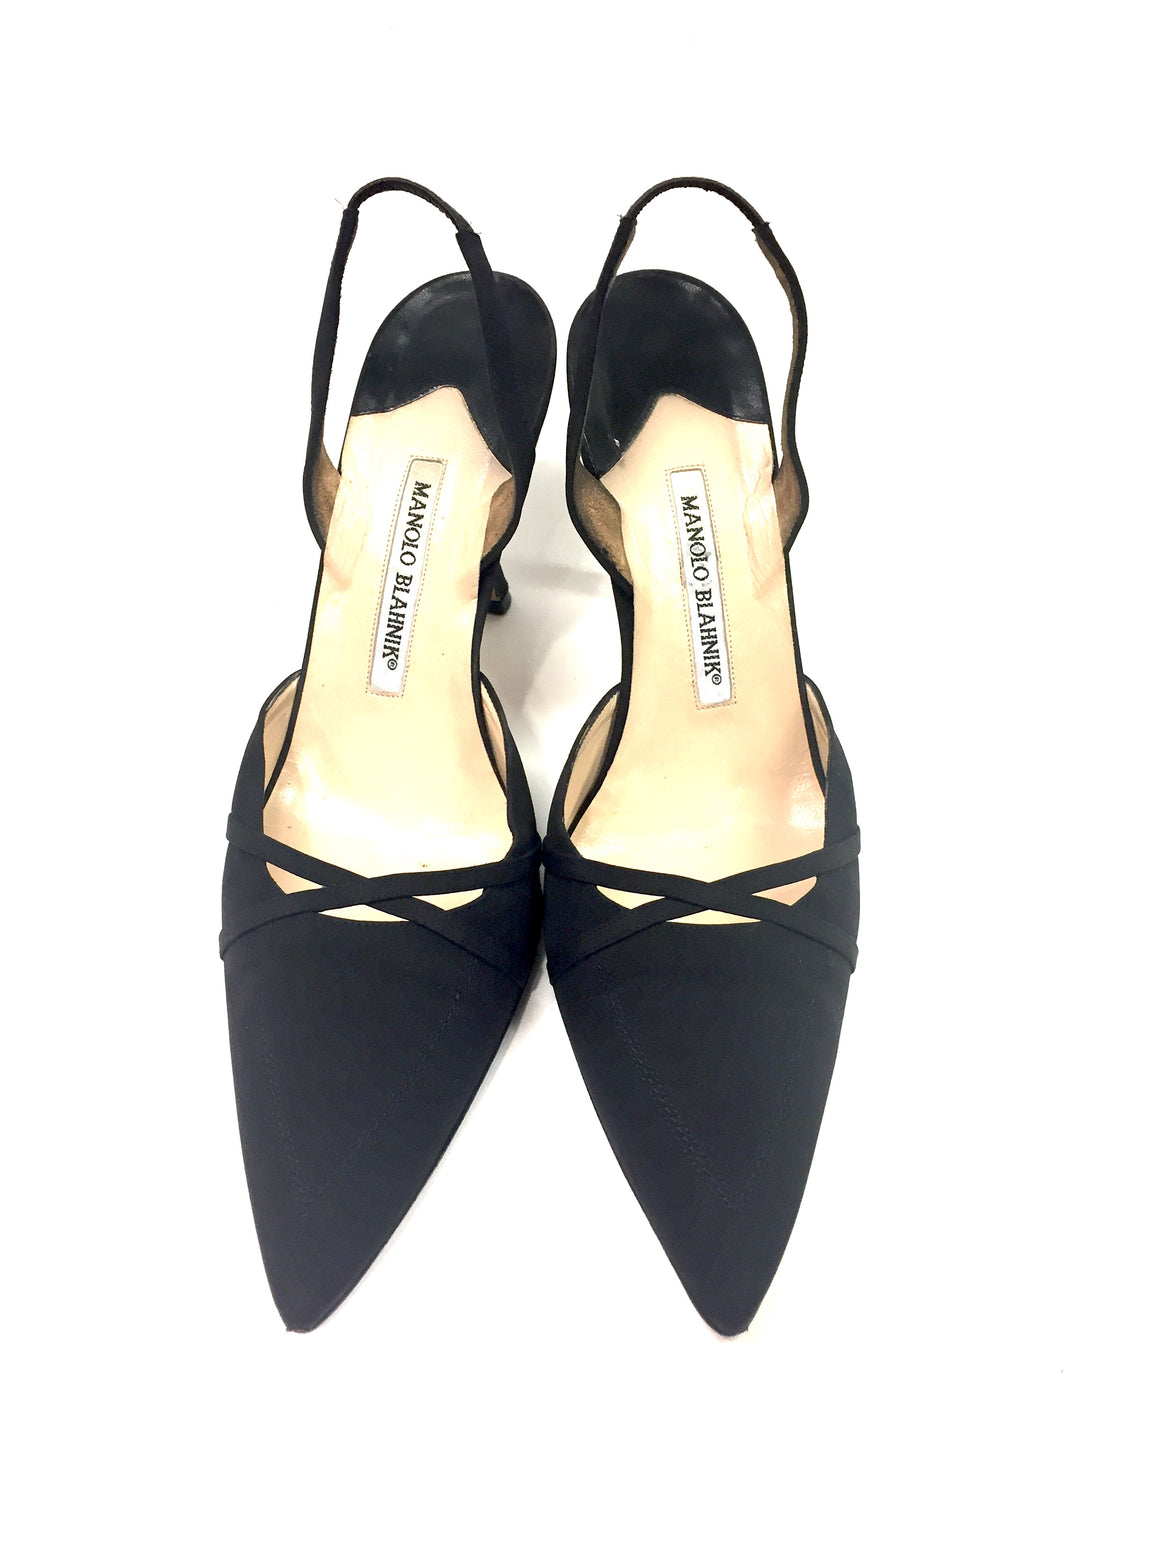 MANOLO BLAHNIK Black Silk Pointed-Toe Hi-Heel Slingback Pumps Sz39